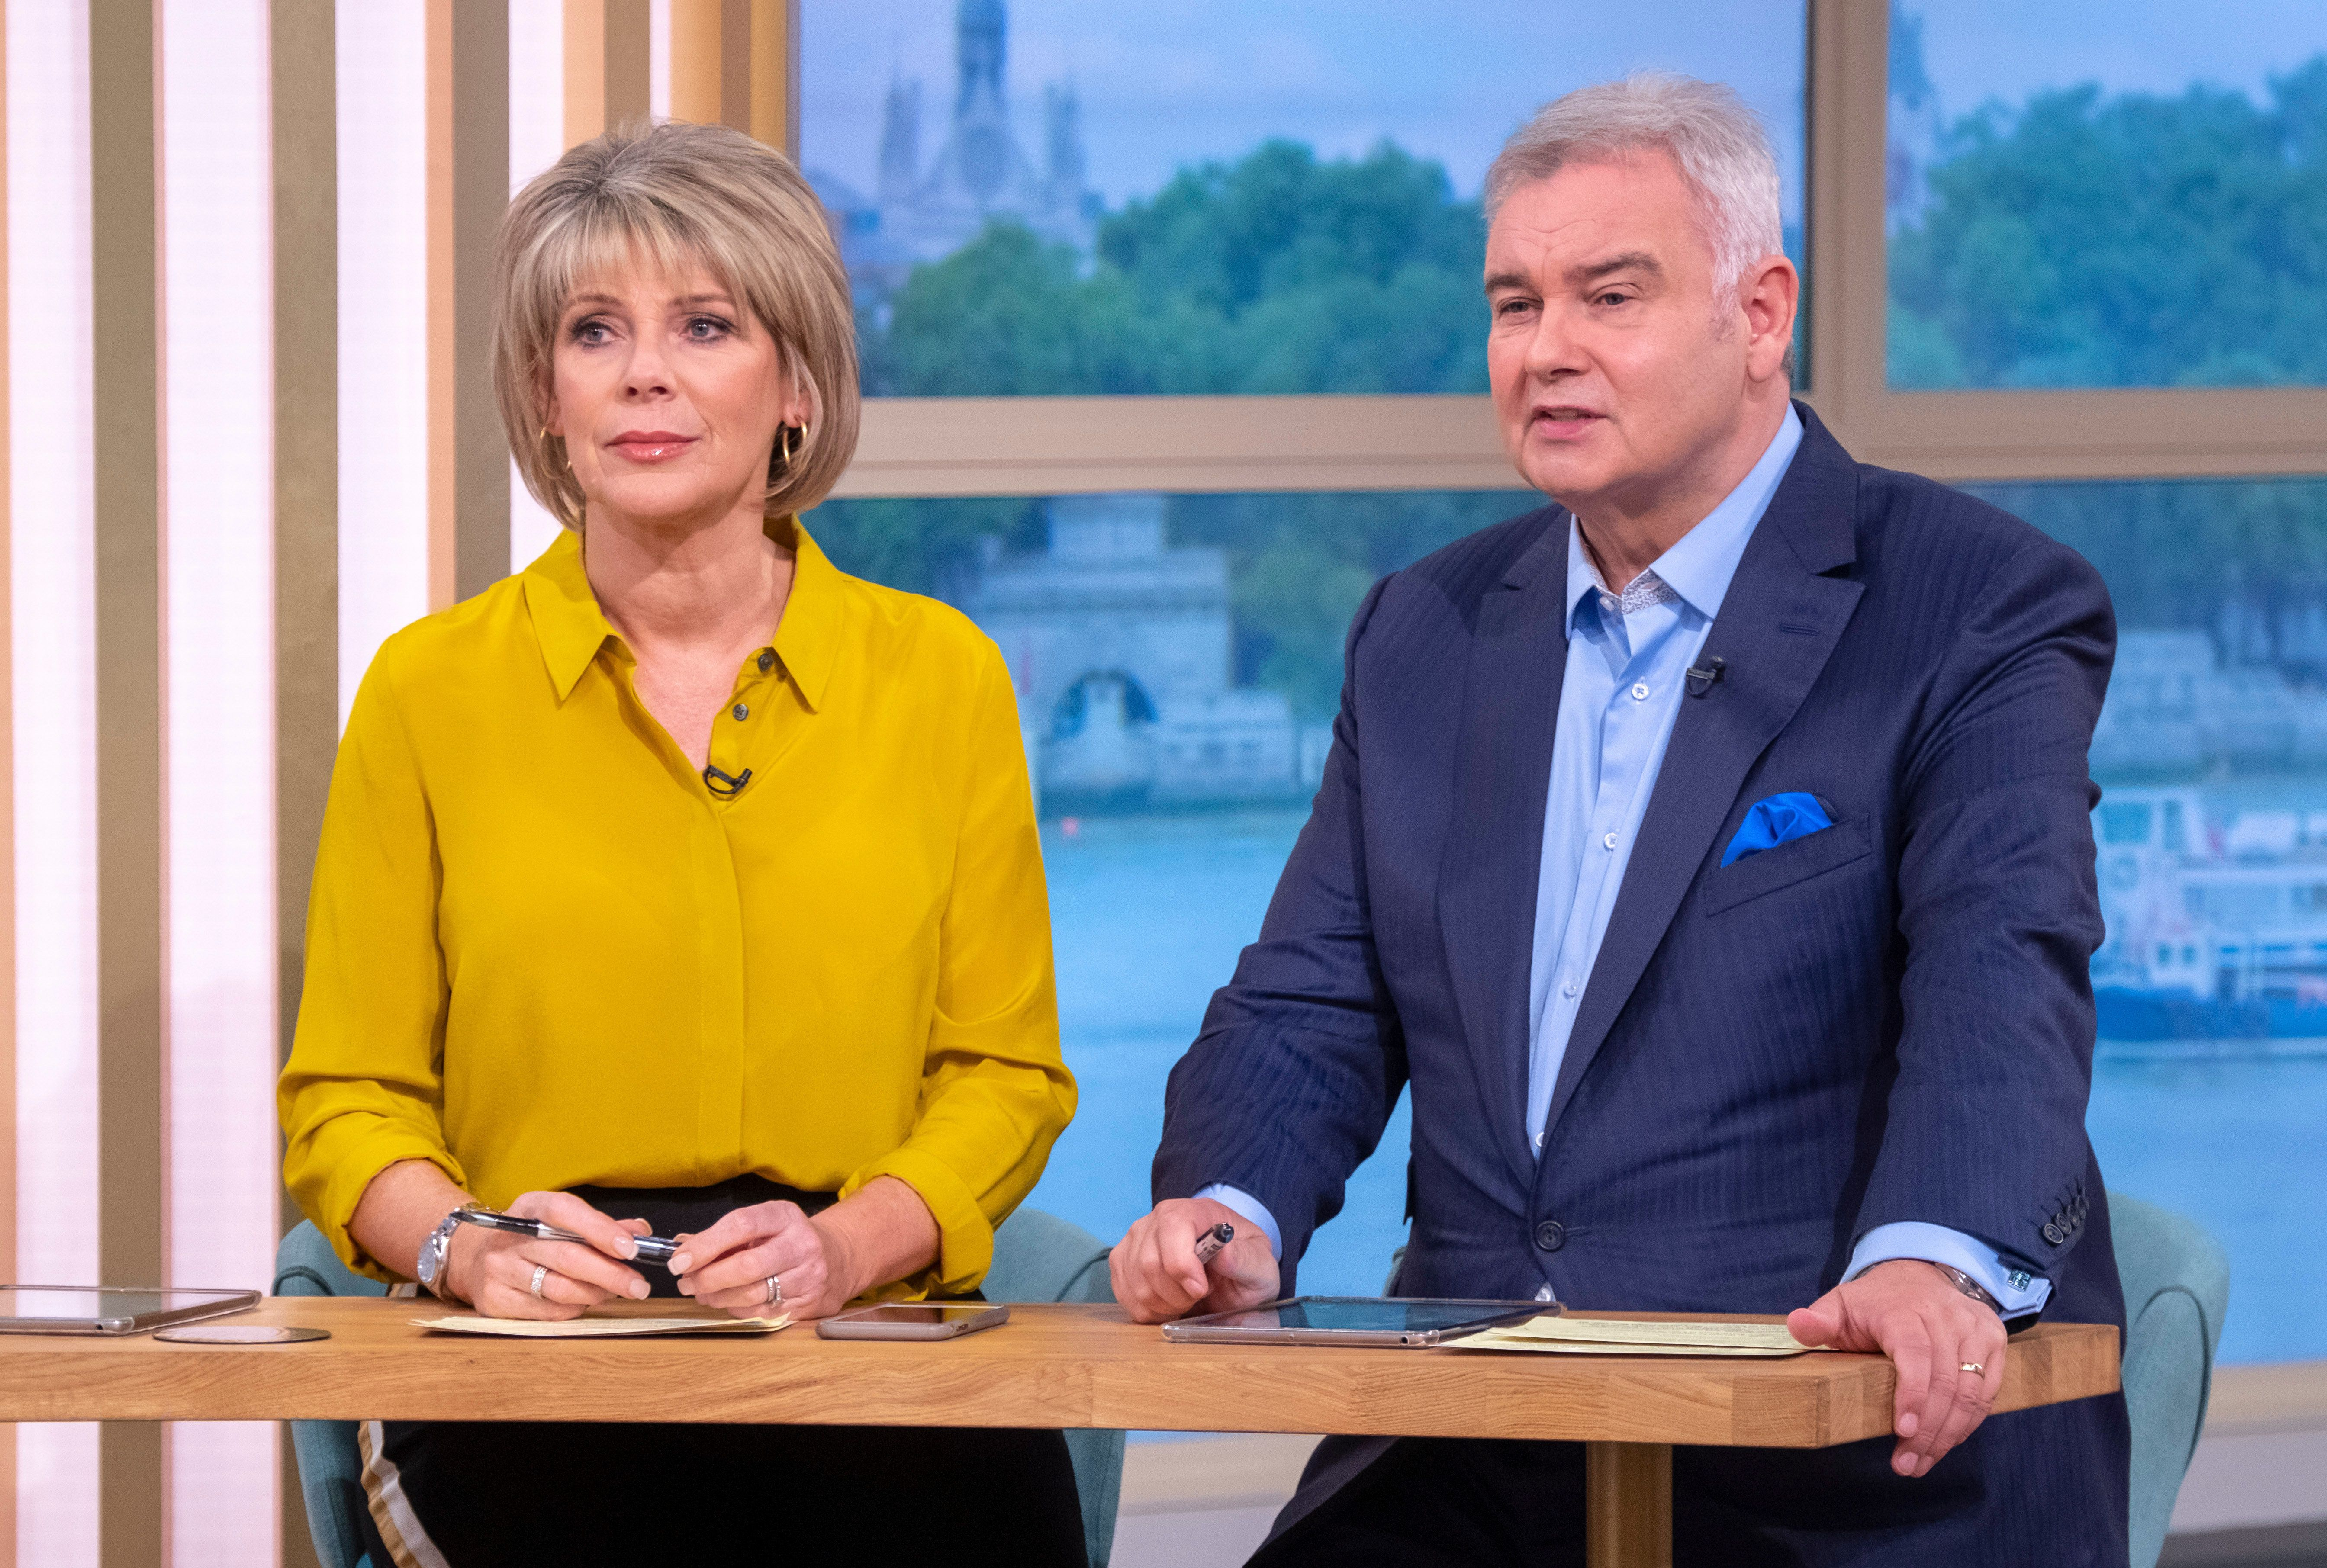 TRUST ISSUES: Eamonn Holmes Says He Was Left 'Very Vulnerable' After Being Conned Out Of